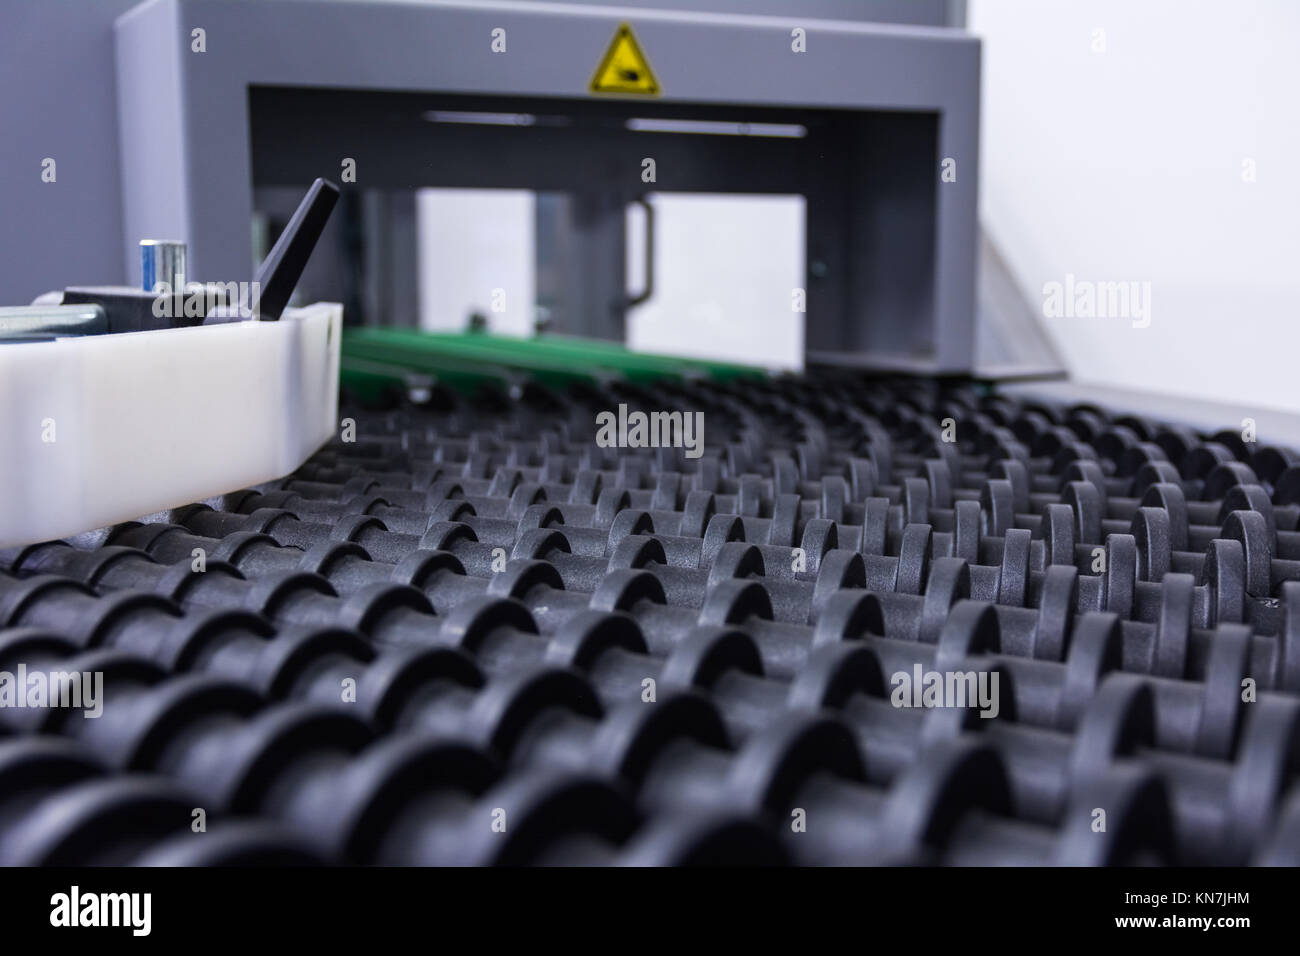 Industrail Transport Rollers Black Machine Factory Production Idle Empty - Stock Image